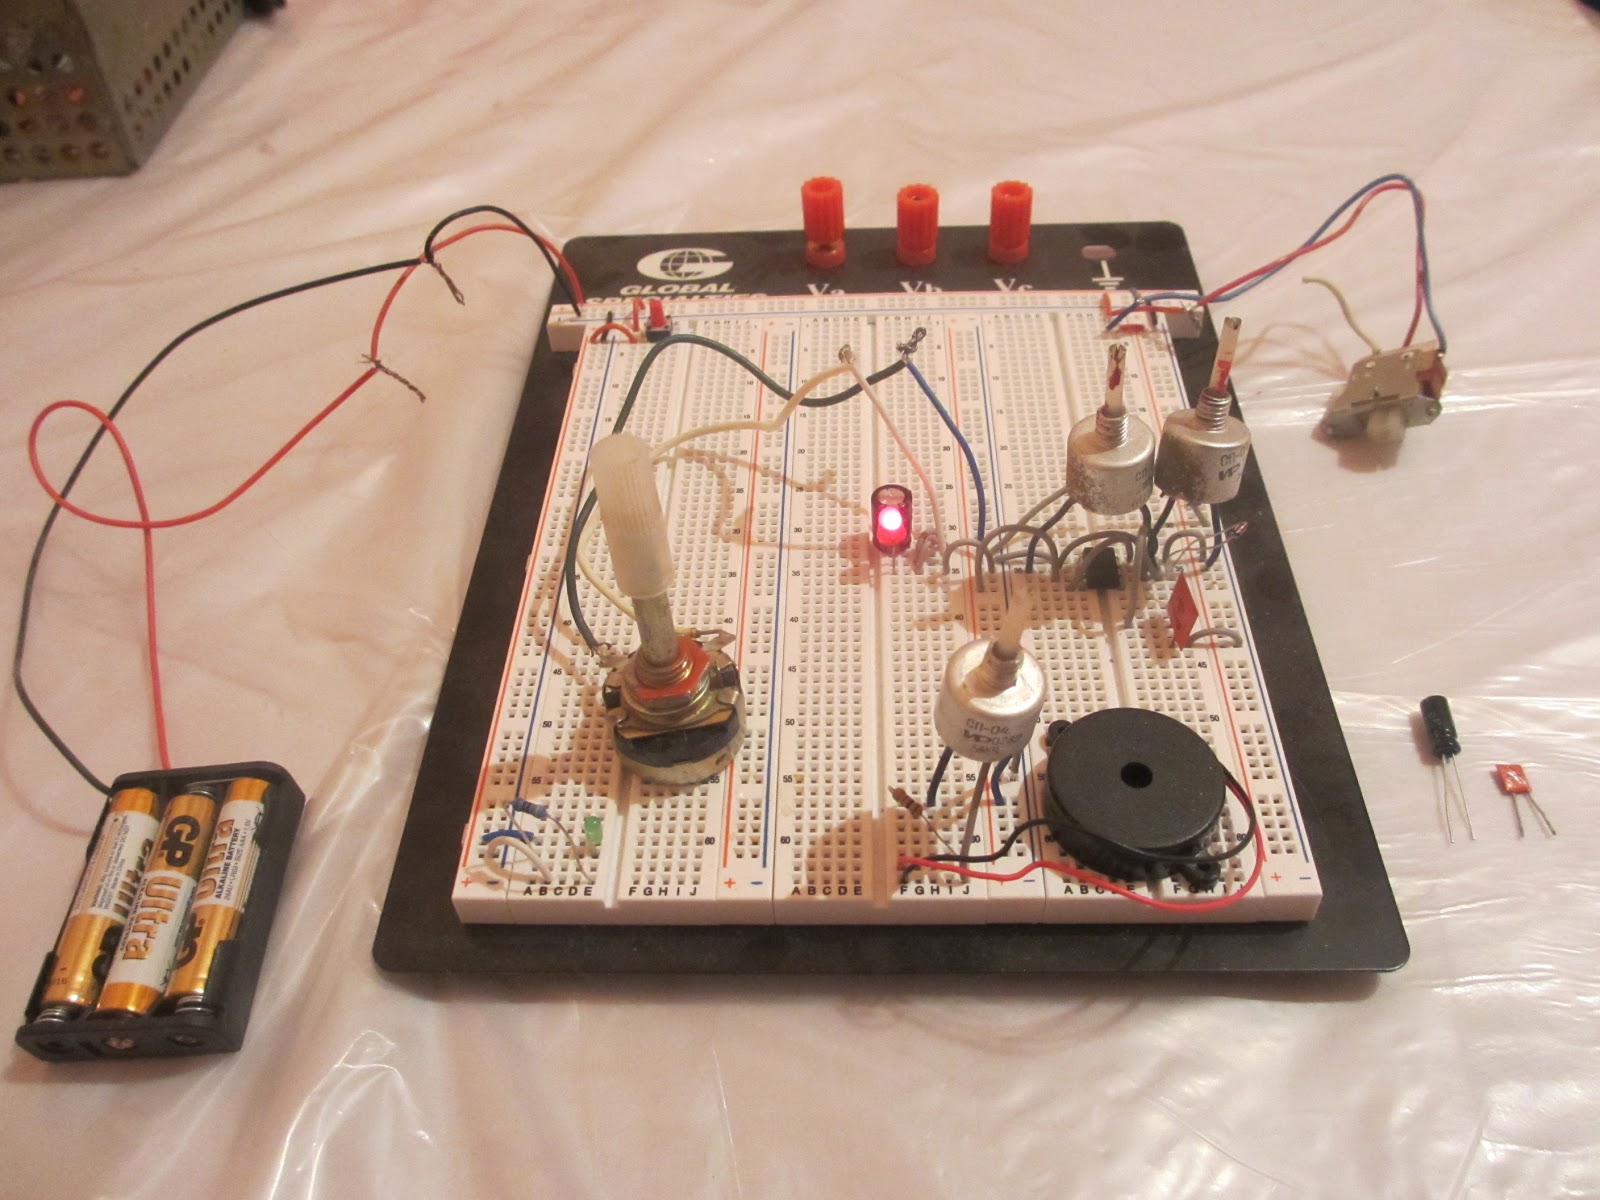 Joldoshs Electronic Projects 555 Timer Setup Potentiometer To Remedy This I Put A Resistor In Series With The Volume Is Also Good Idea For Other Potentiometers So That And Led